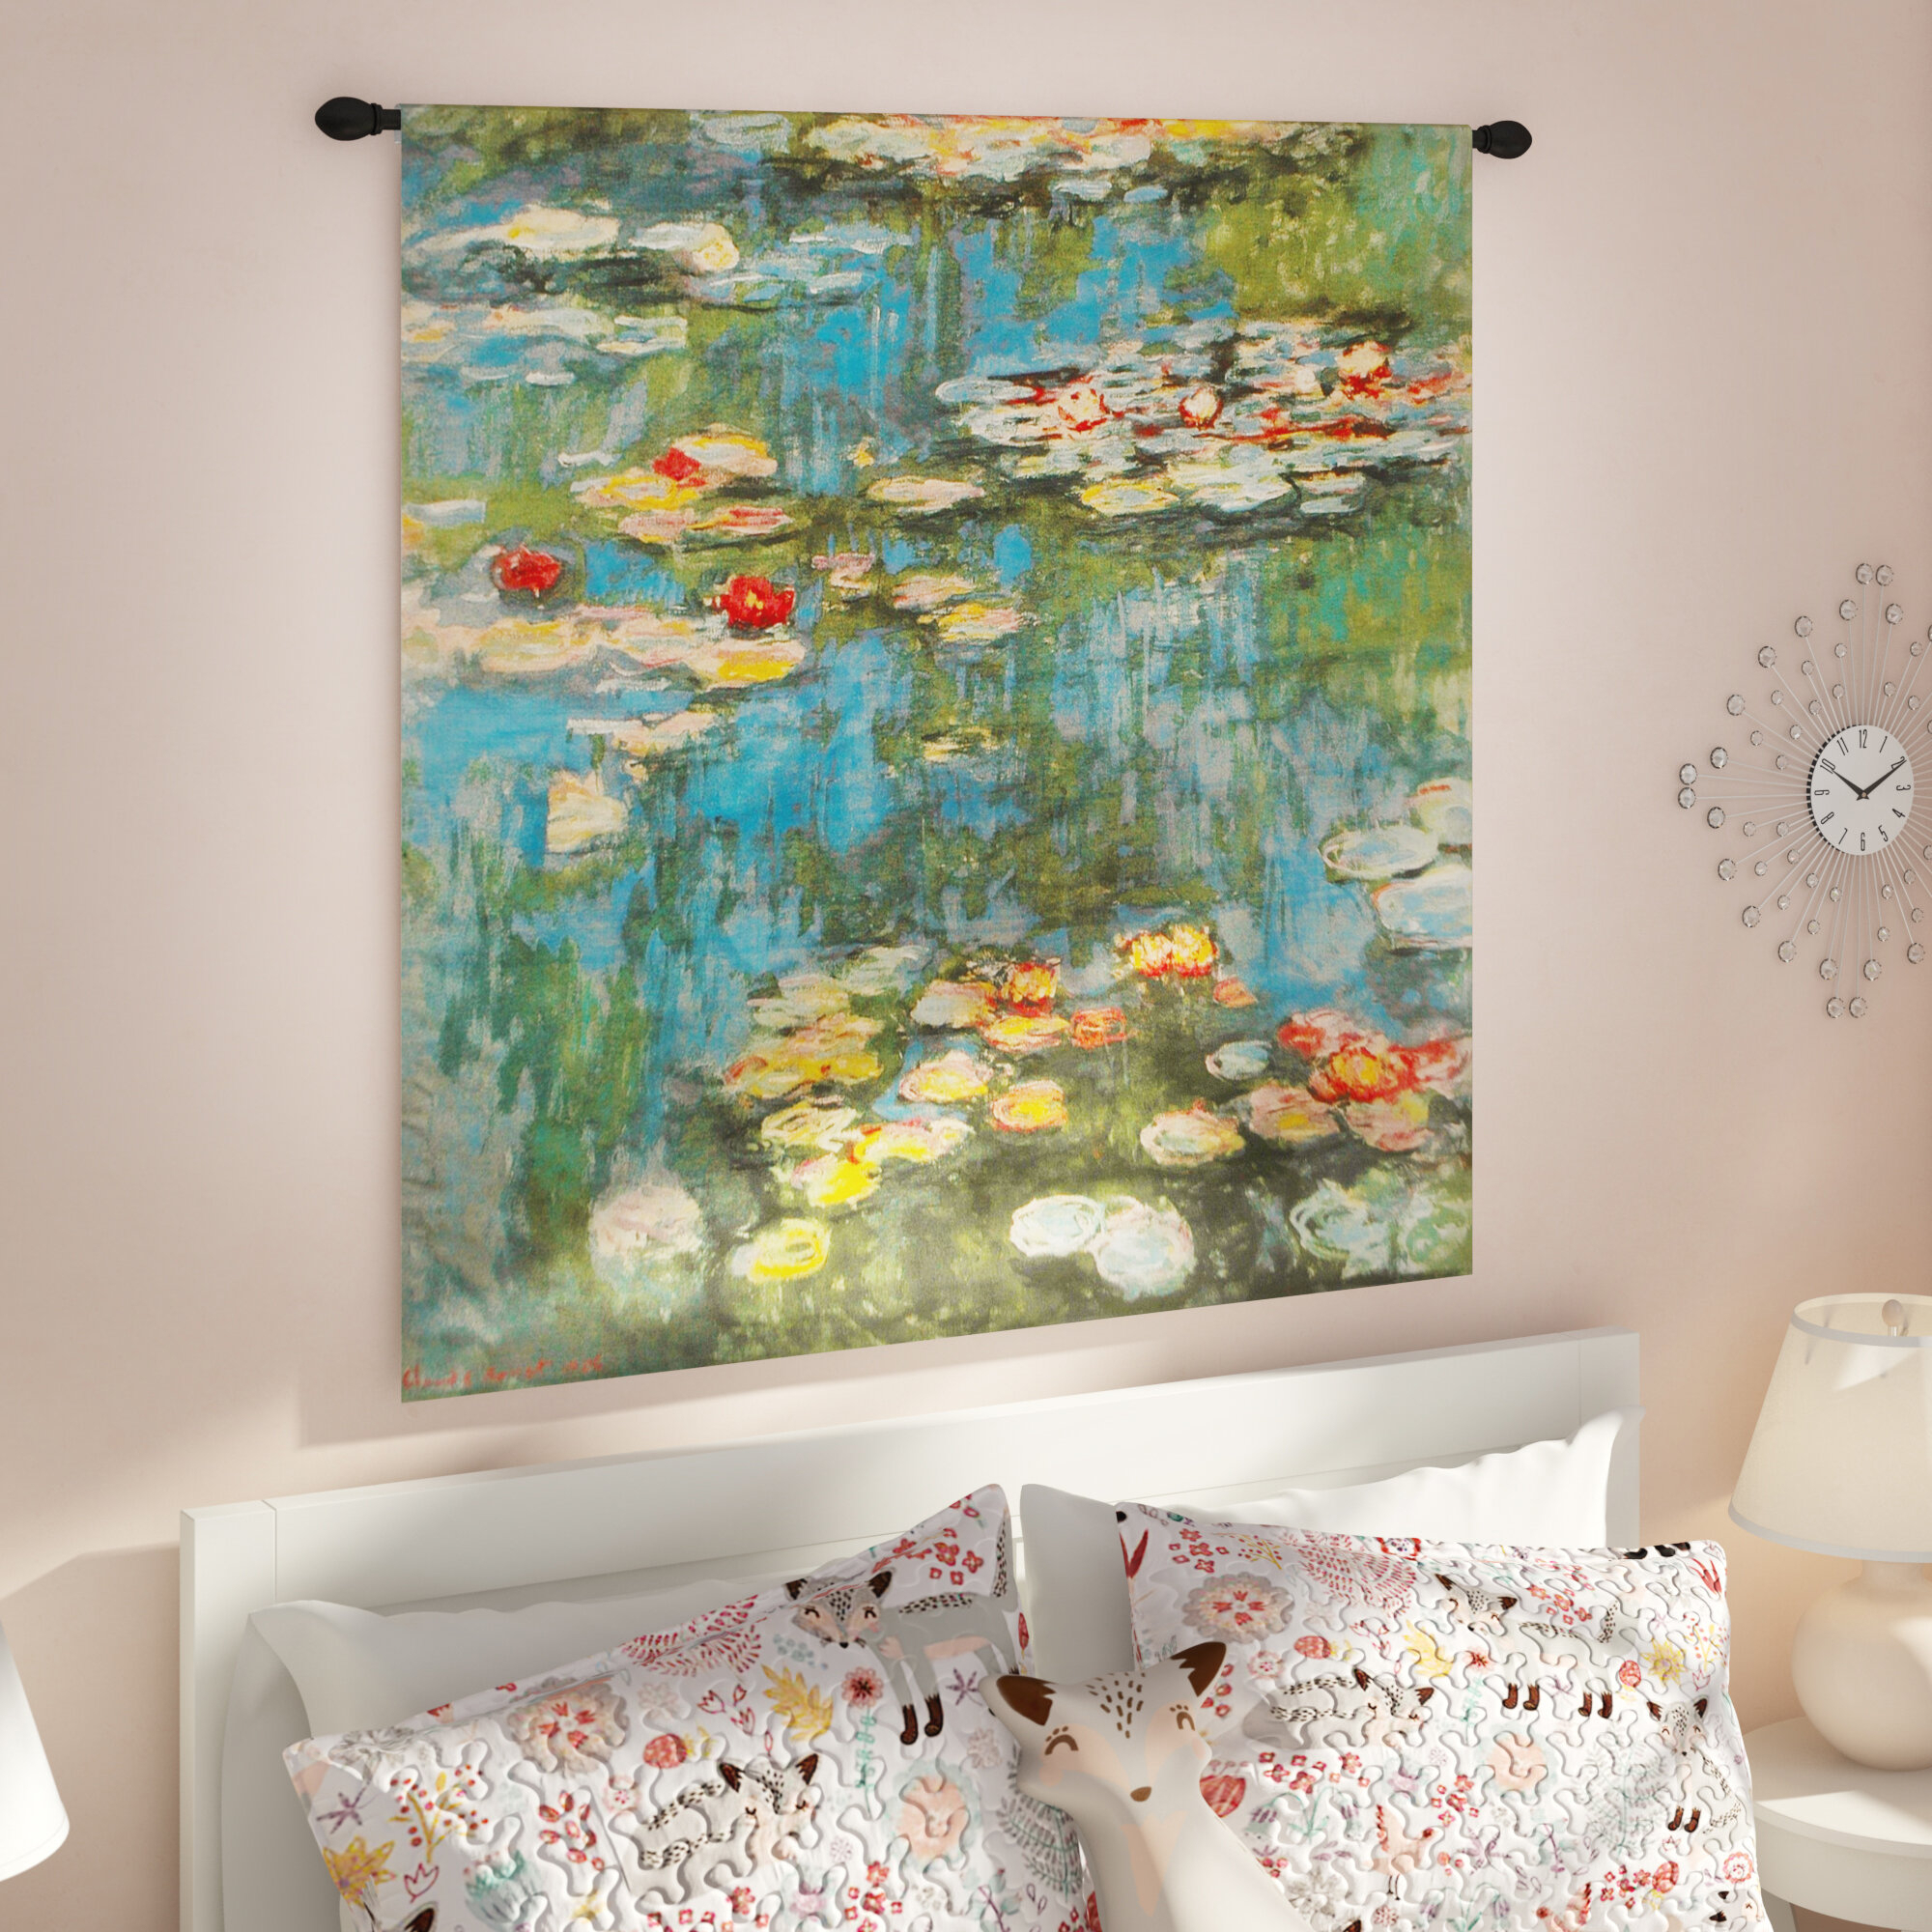 Charlton Home® Water Lilies Tapestry & Reviews   Wayfair With Regard To Most Recently Released Blended Fabric Classic French Rococo Woven Tapestries (View 16 of 20)